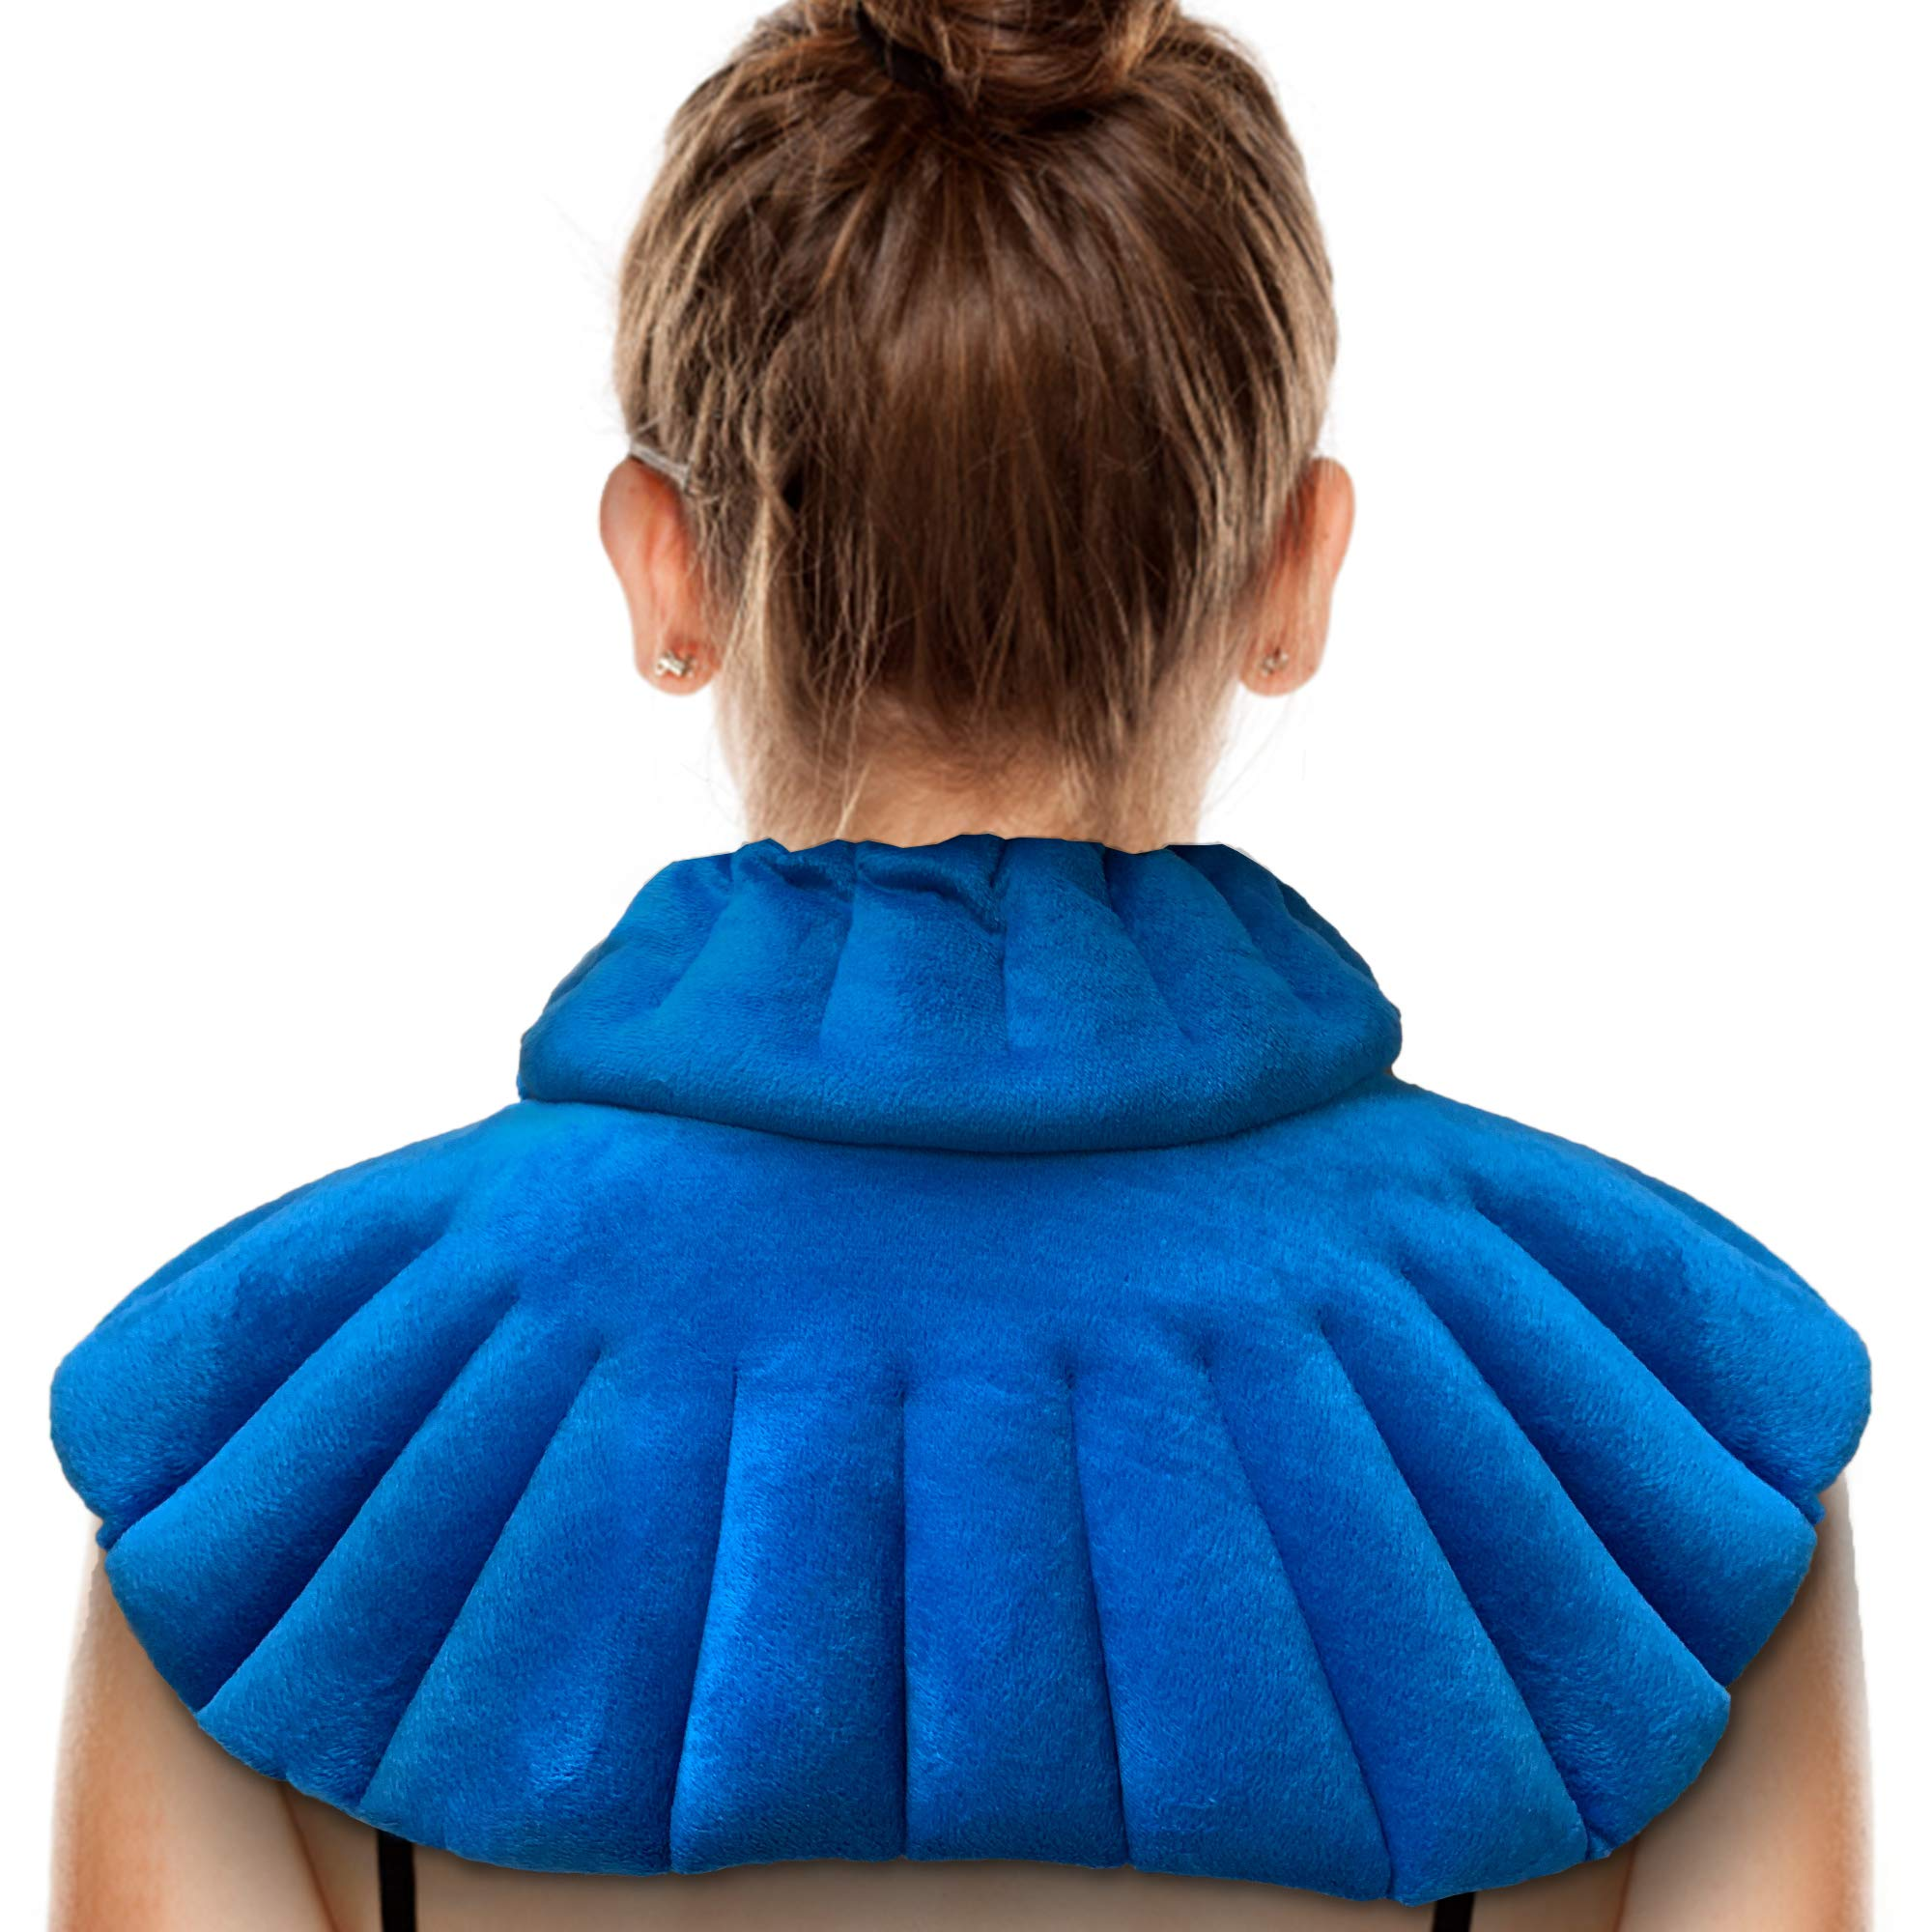 Microwavable Heating Pad for Neck and Shoulders by Zensity Wellness - Weighted Neck Wrap with Blend Natural Herbal - Heat and Cold Therapy for Anxiety, Pain, Stress, Arthritis and Pressure Relief by Zensity Wellness